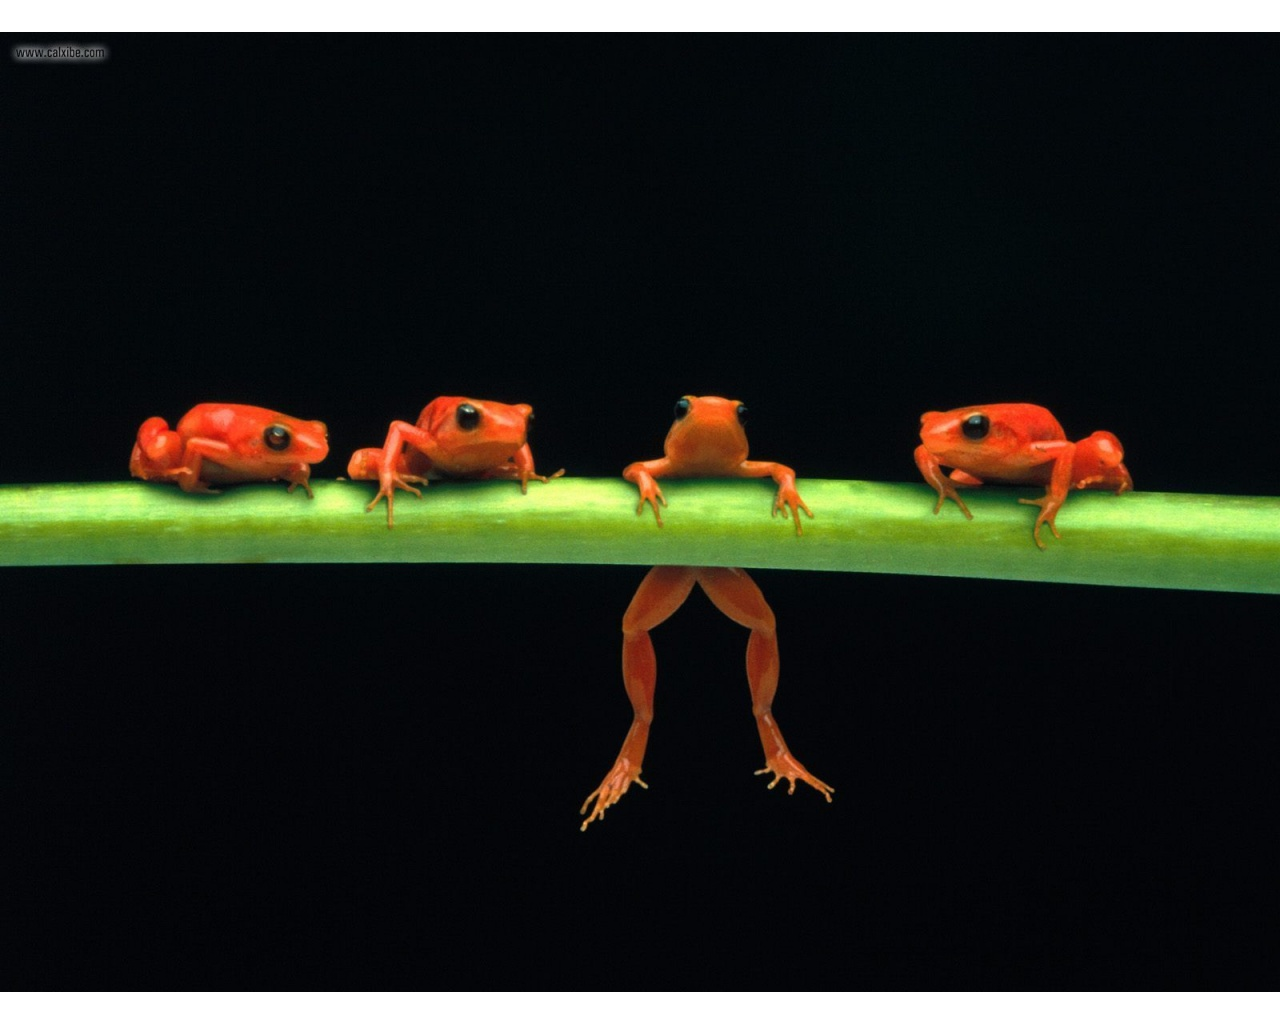 Hang In There Red Tree Frogs Wallpaper-Hang in There Red Tree Frogs wallpaper-8